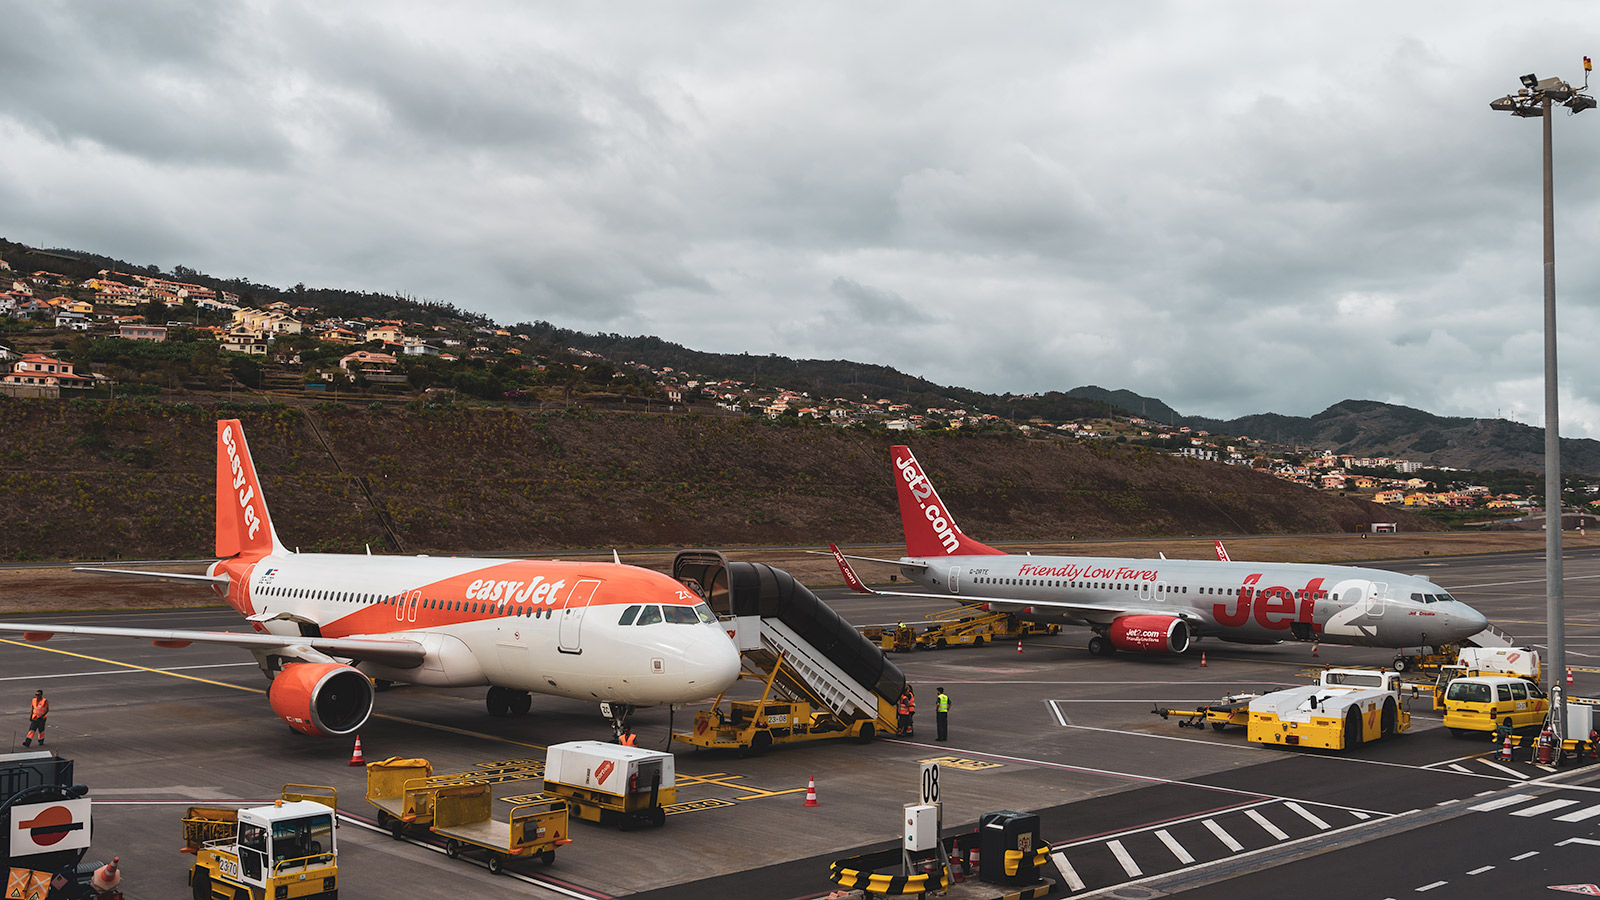 Madeira Airport has good facilities for airplane watching due to the outdoor balcony